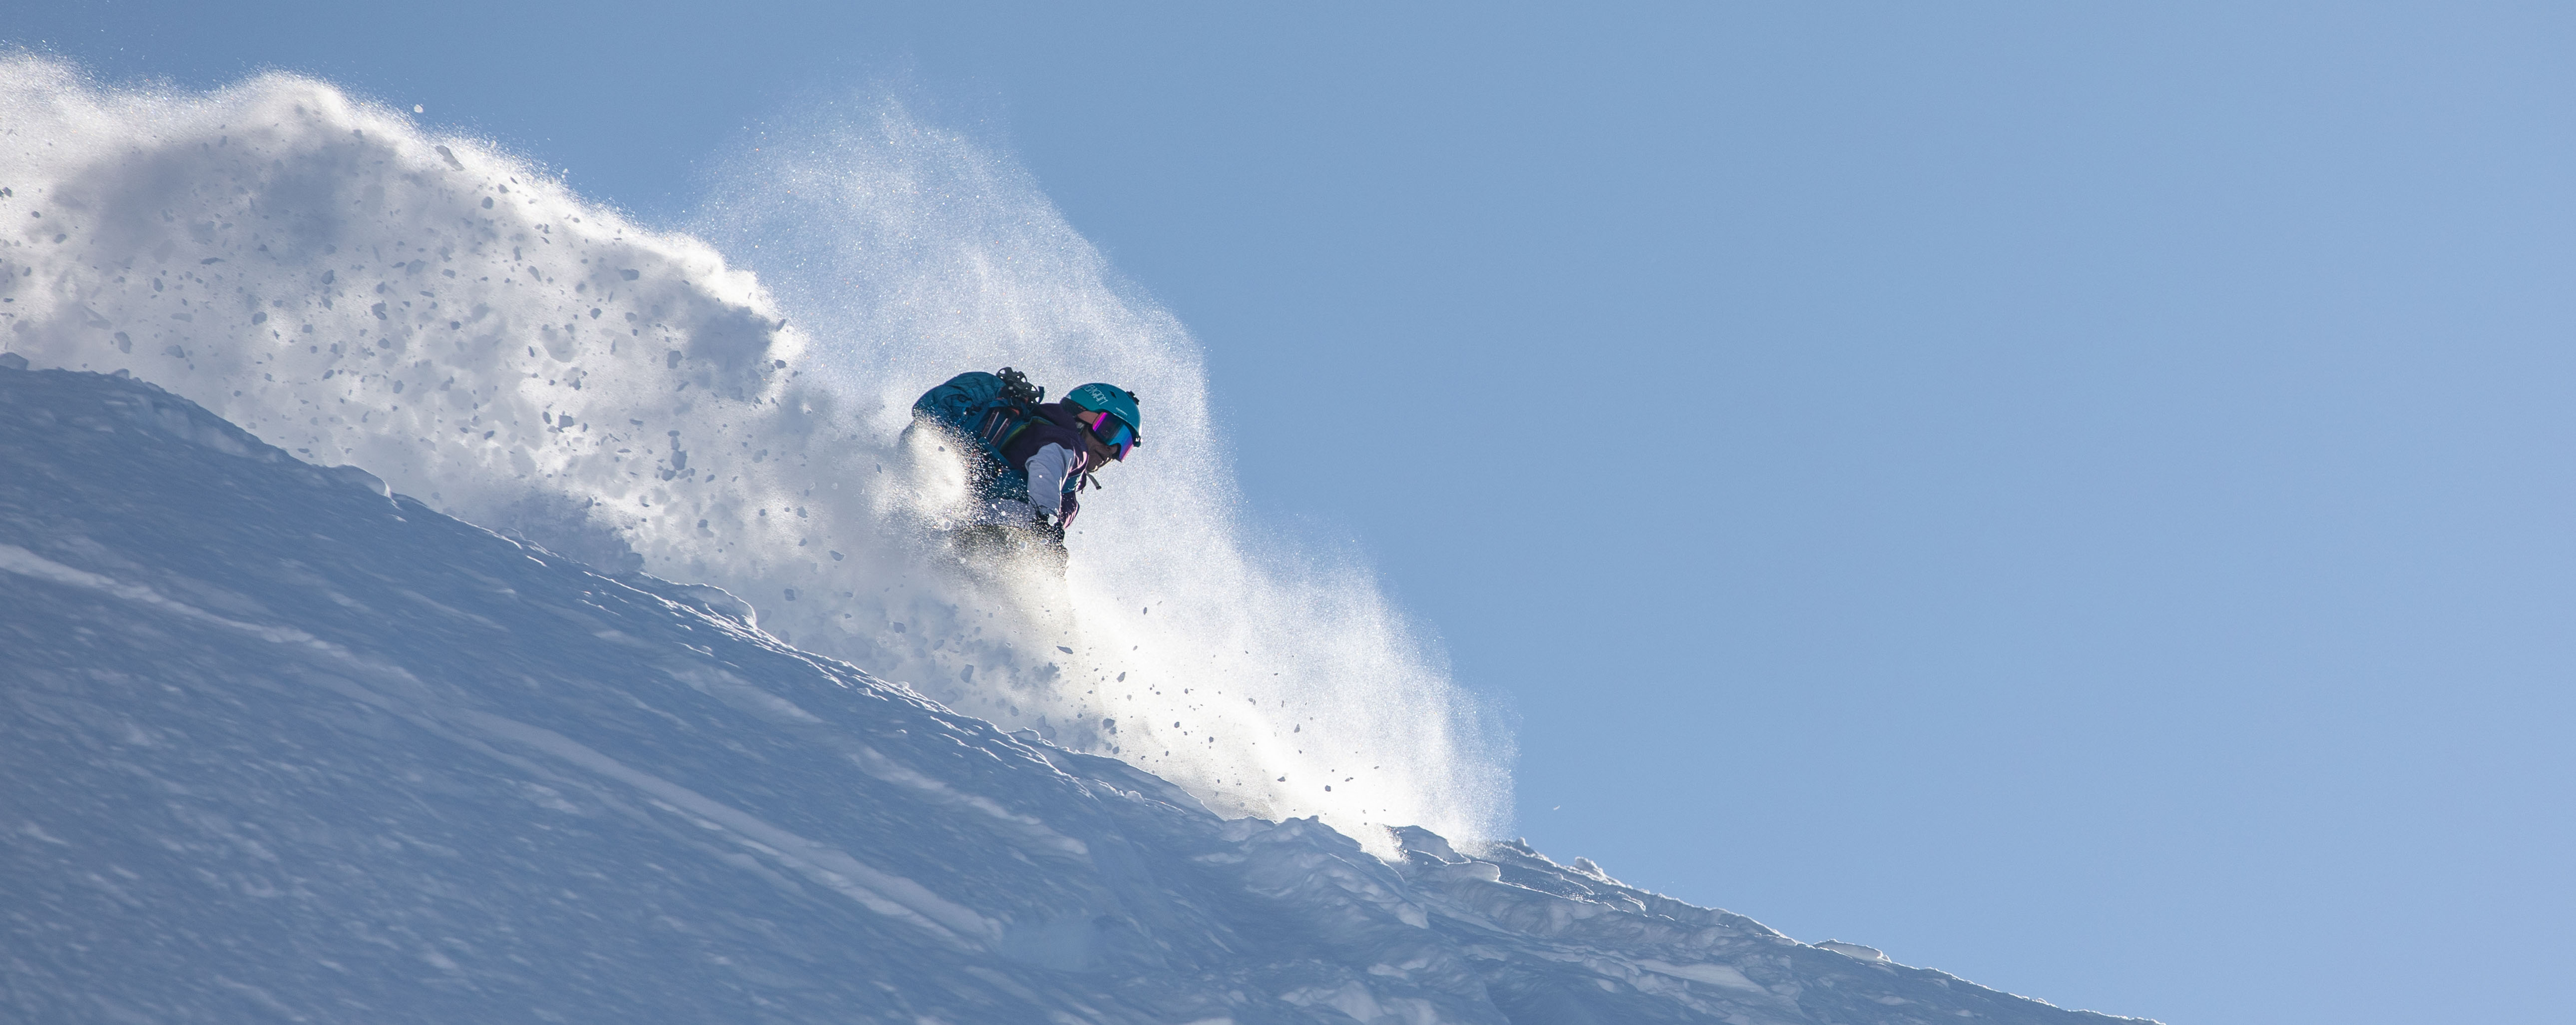 Dani Reyes-Acosta Pow Cloud - Photo Joey Schusler